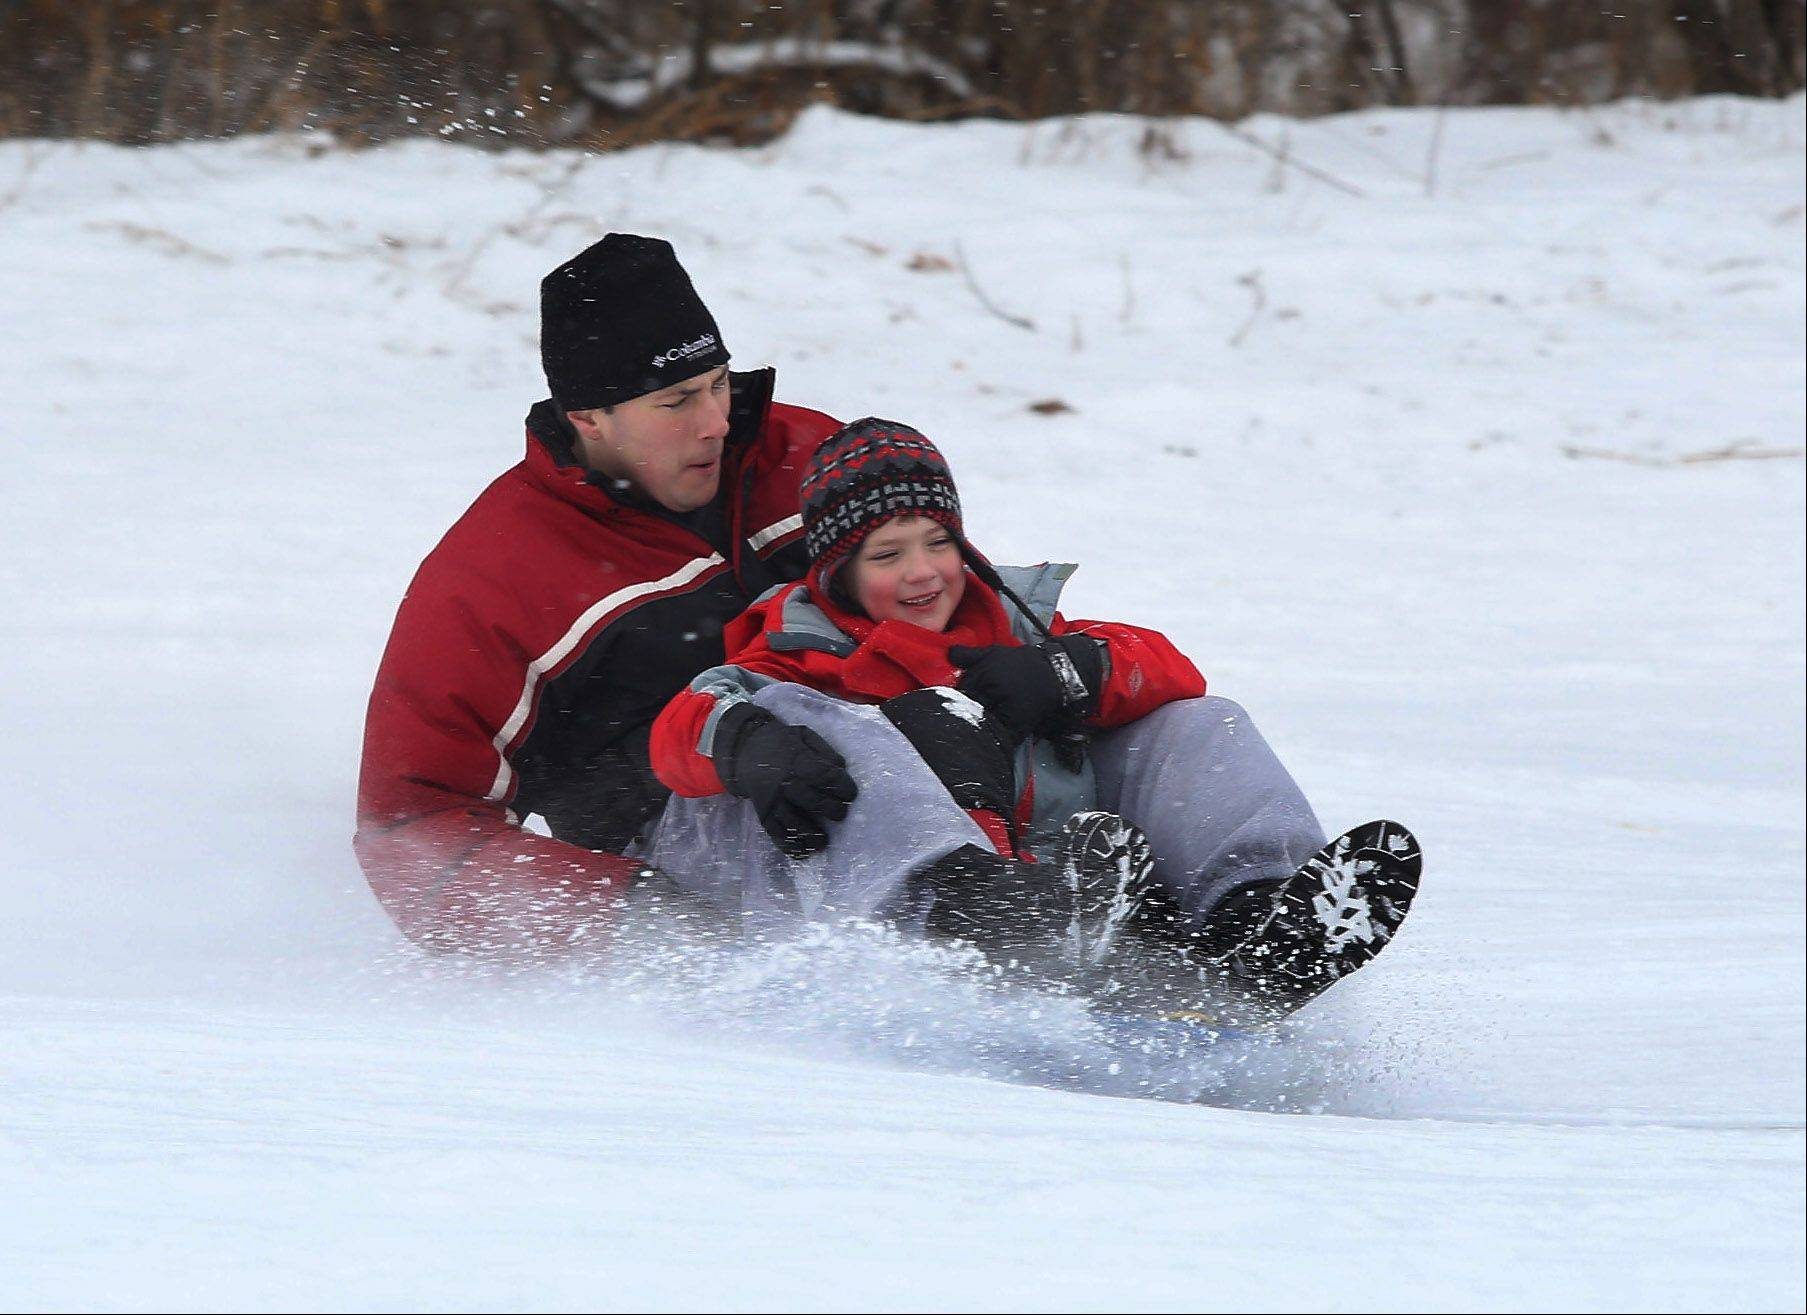 Jesse Walker, of Libertyville, sleds down the hill with his son, Joey, 7, at Adler Park in Libertyville on Thursday. The park features two sledding hills, an ice rink, and a warming house during the winter months.